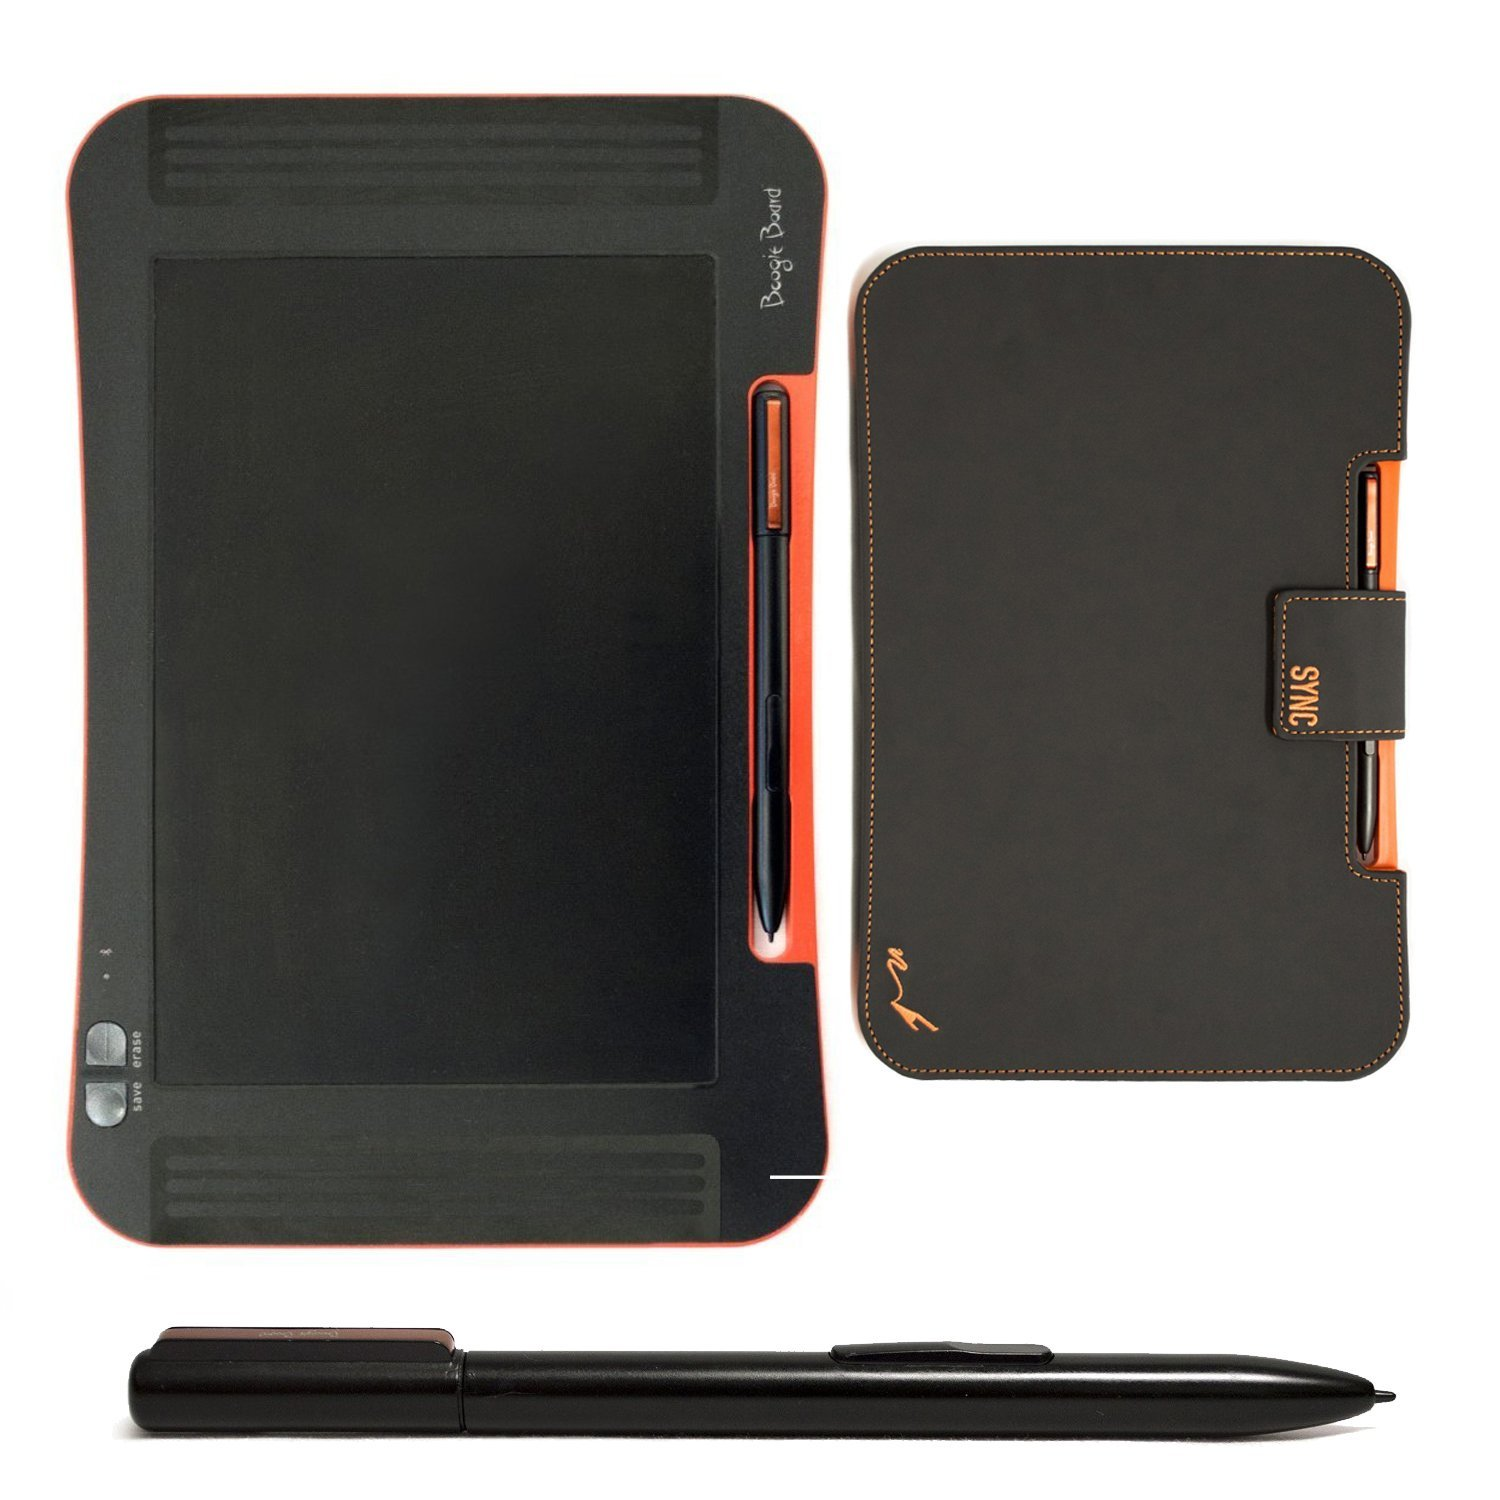 Boogie Board Sync 9.7-Inch LCD eWriter in Black and Orange with Folio Case and Replacement Stylus by Boogie Board